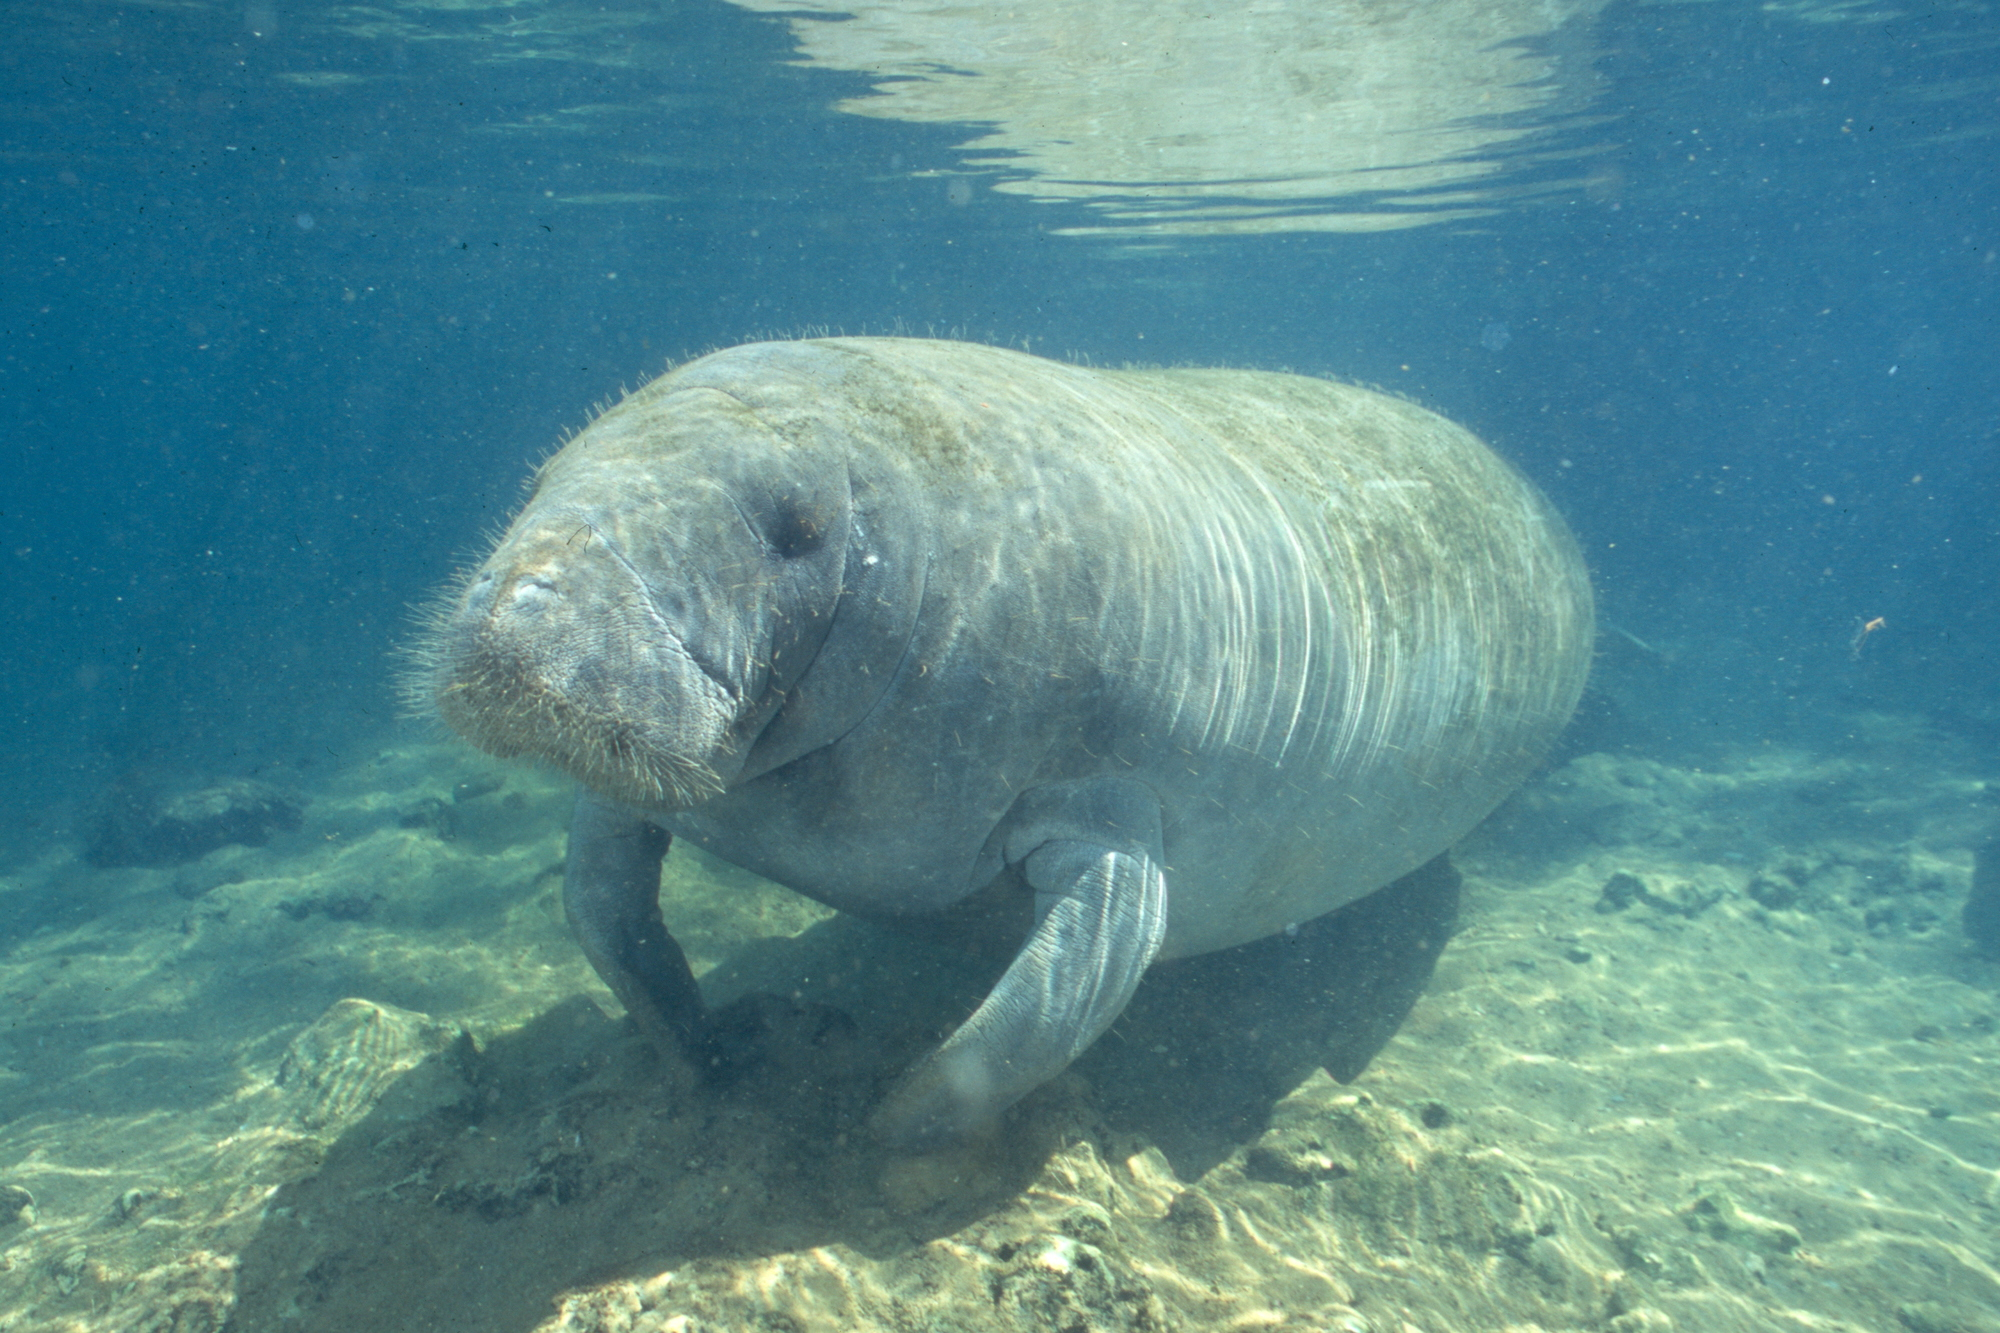 A Manatee at Ellie Schiller Homosassa Springs Wildlife State Park